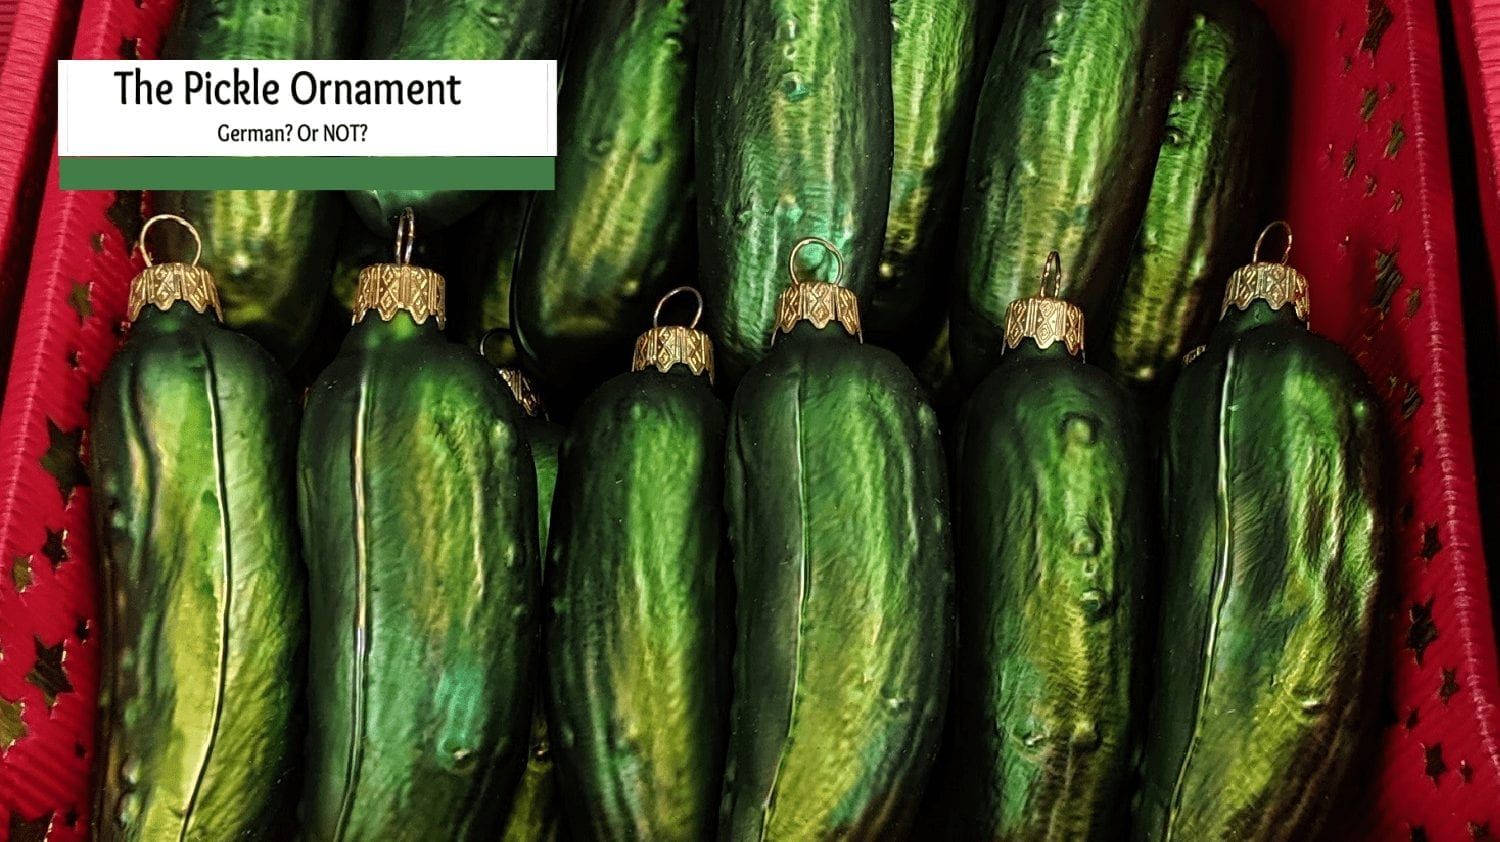 German Pickle Ornament Story- How did the Green Pickle Ornament Tradition Start?